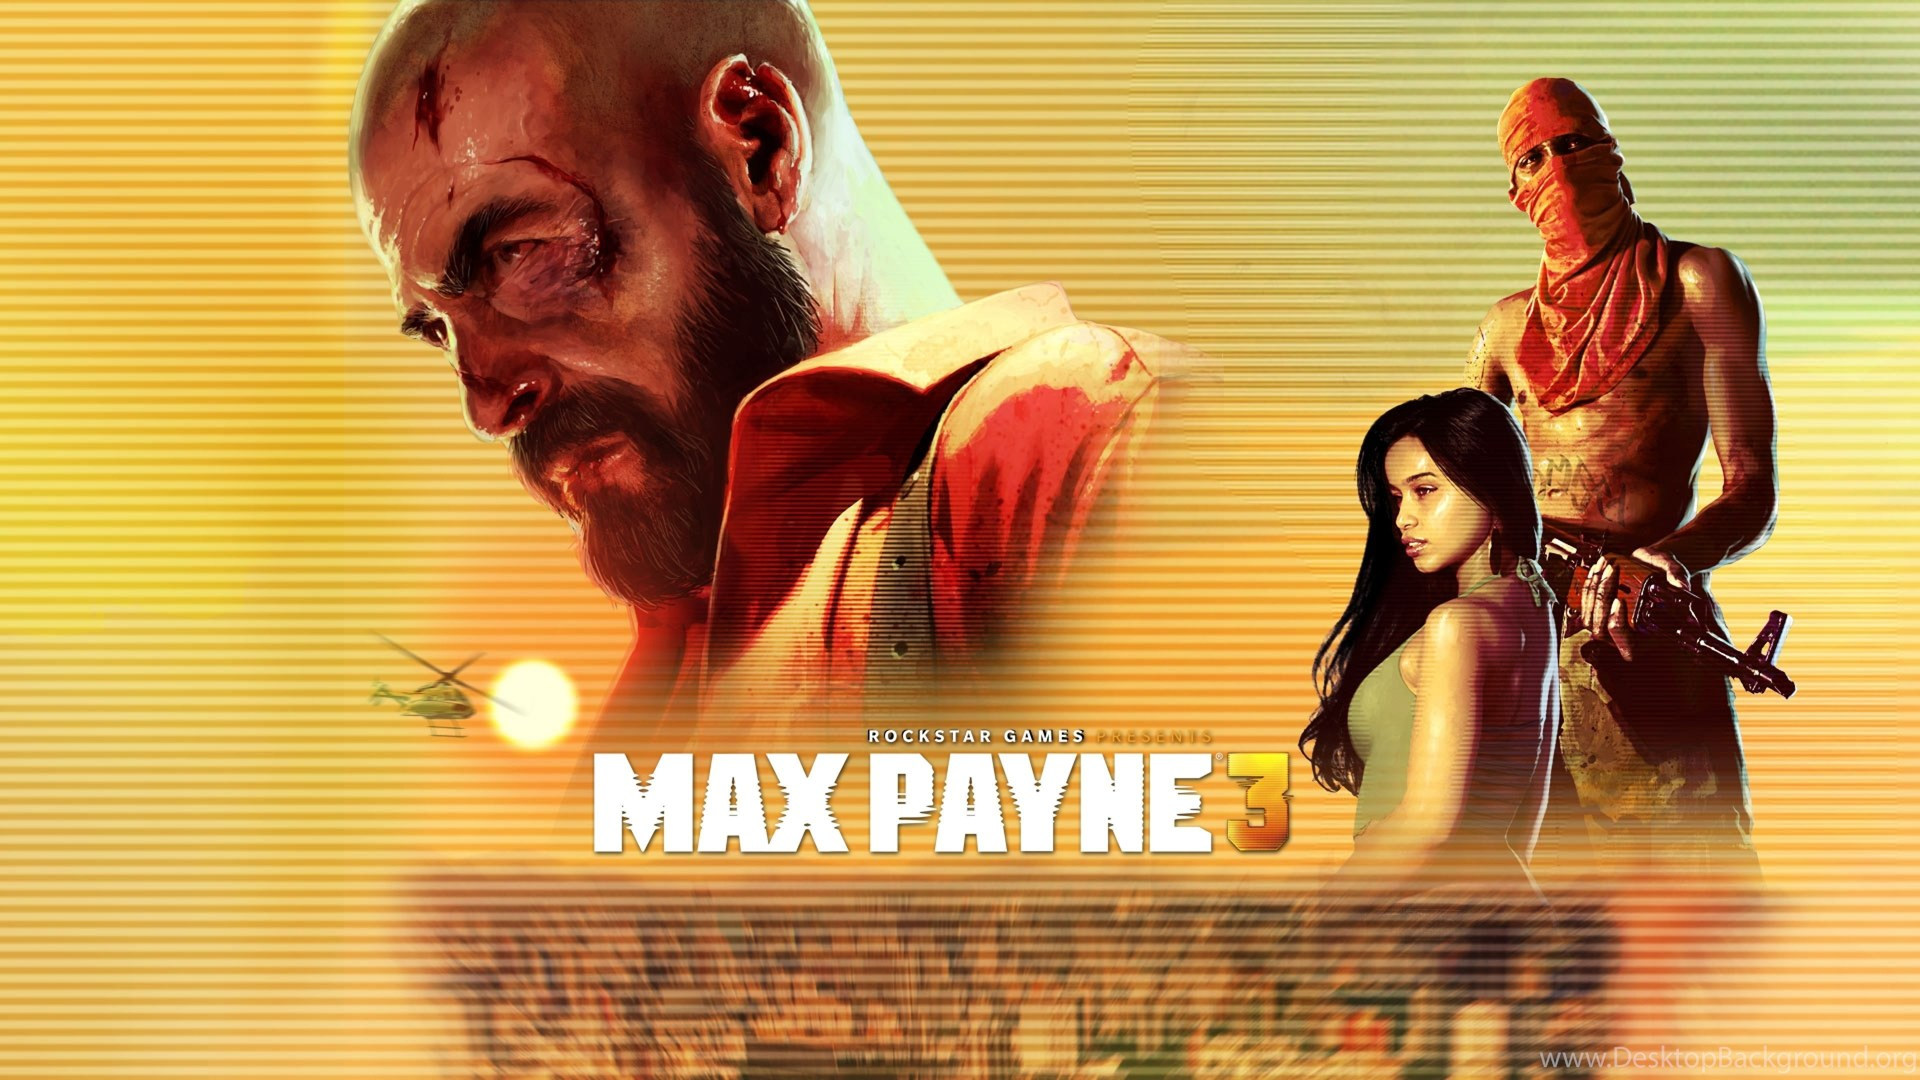 4k Ultra Hd Max Payne 3 Wallpapers Hd Desktop Backgrounds